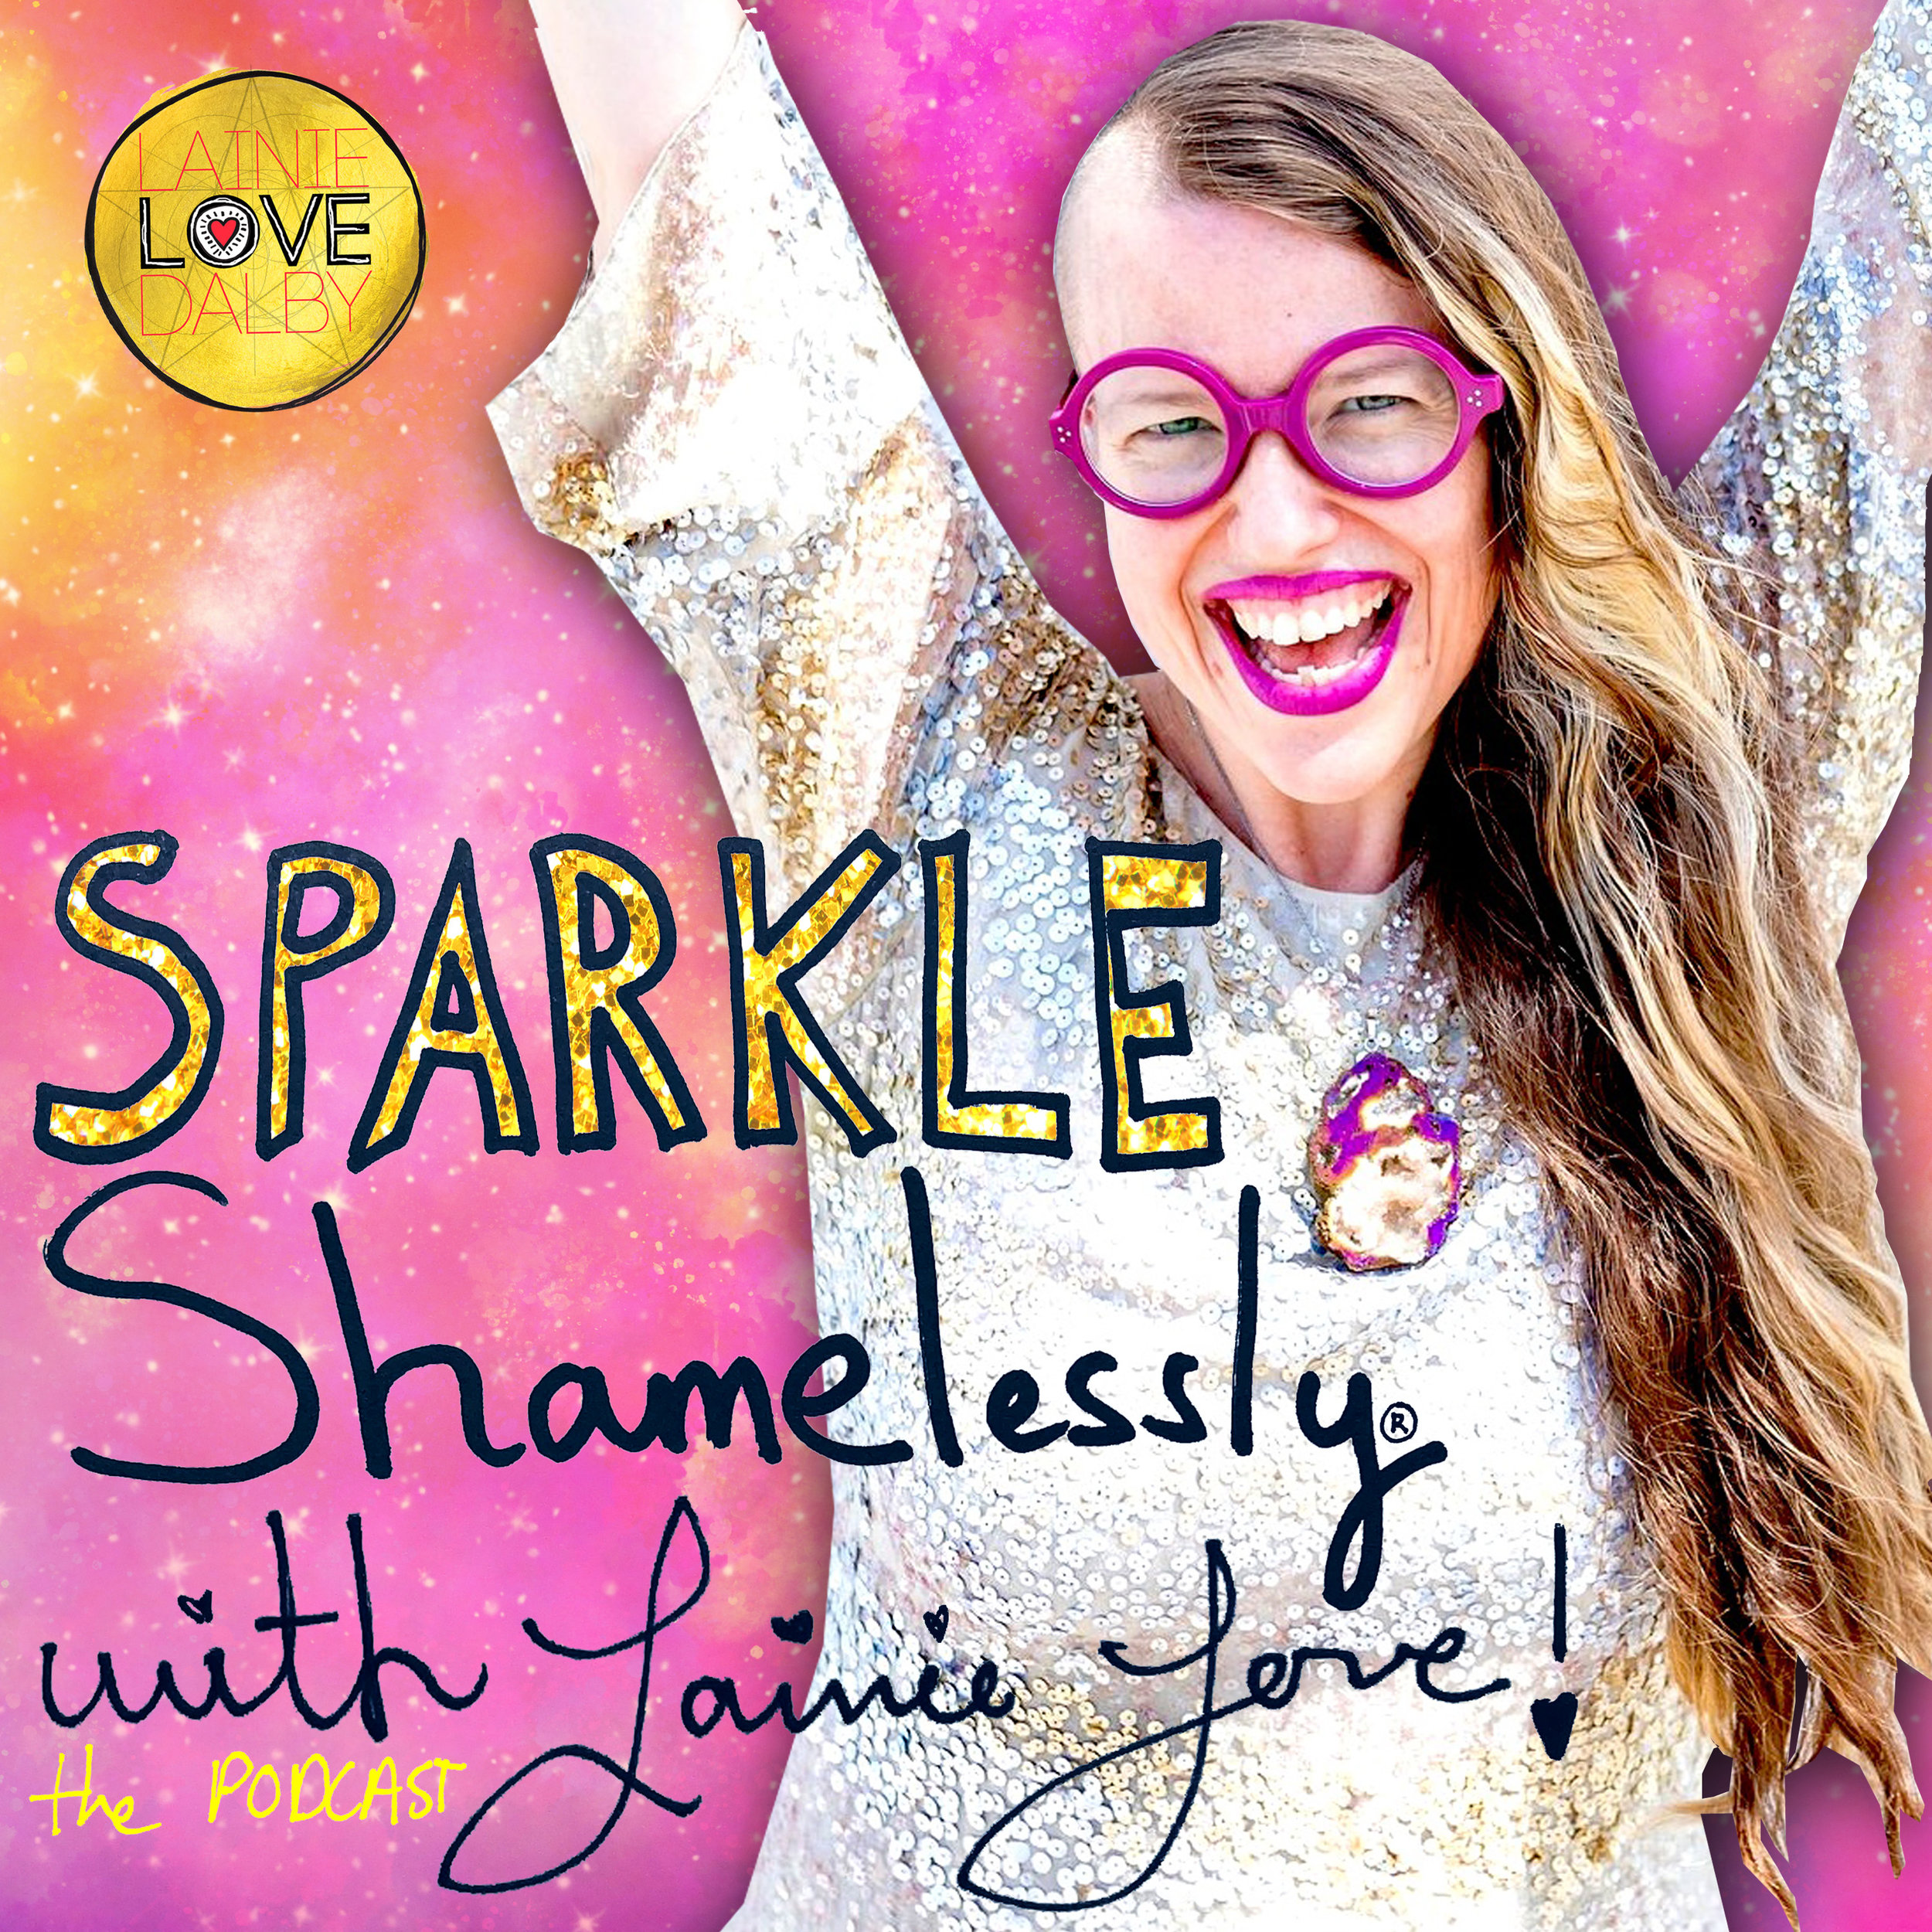 Sparkle Shamelessly with Lainie Love Podcast Cover FINAL (2).jpg